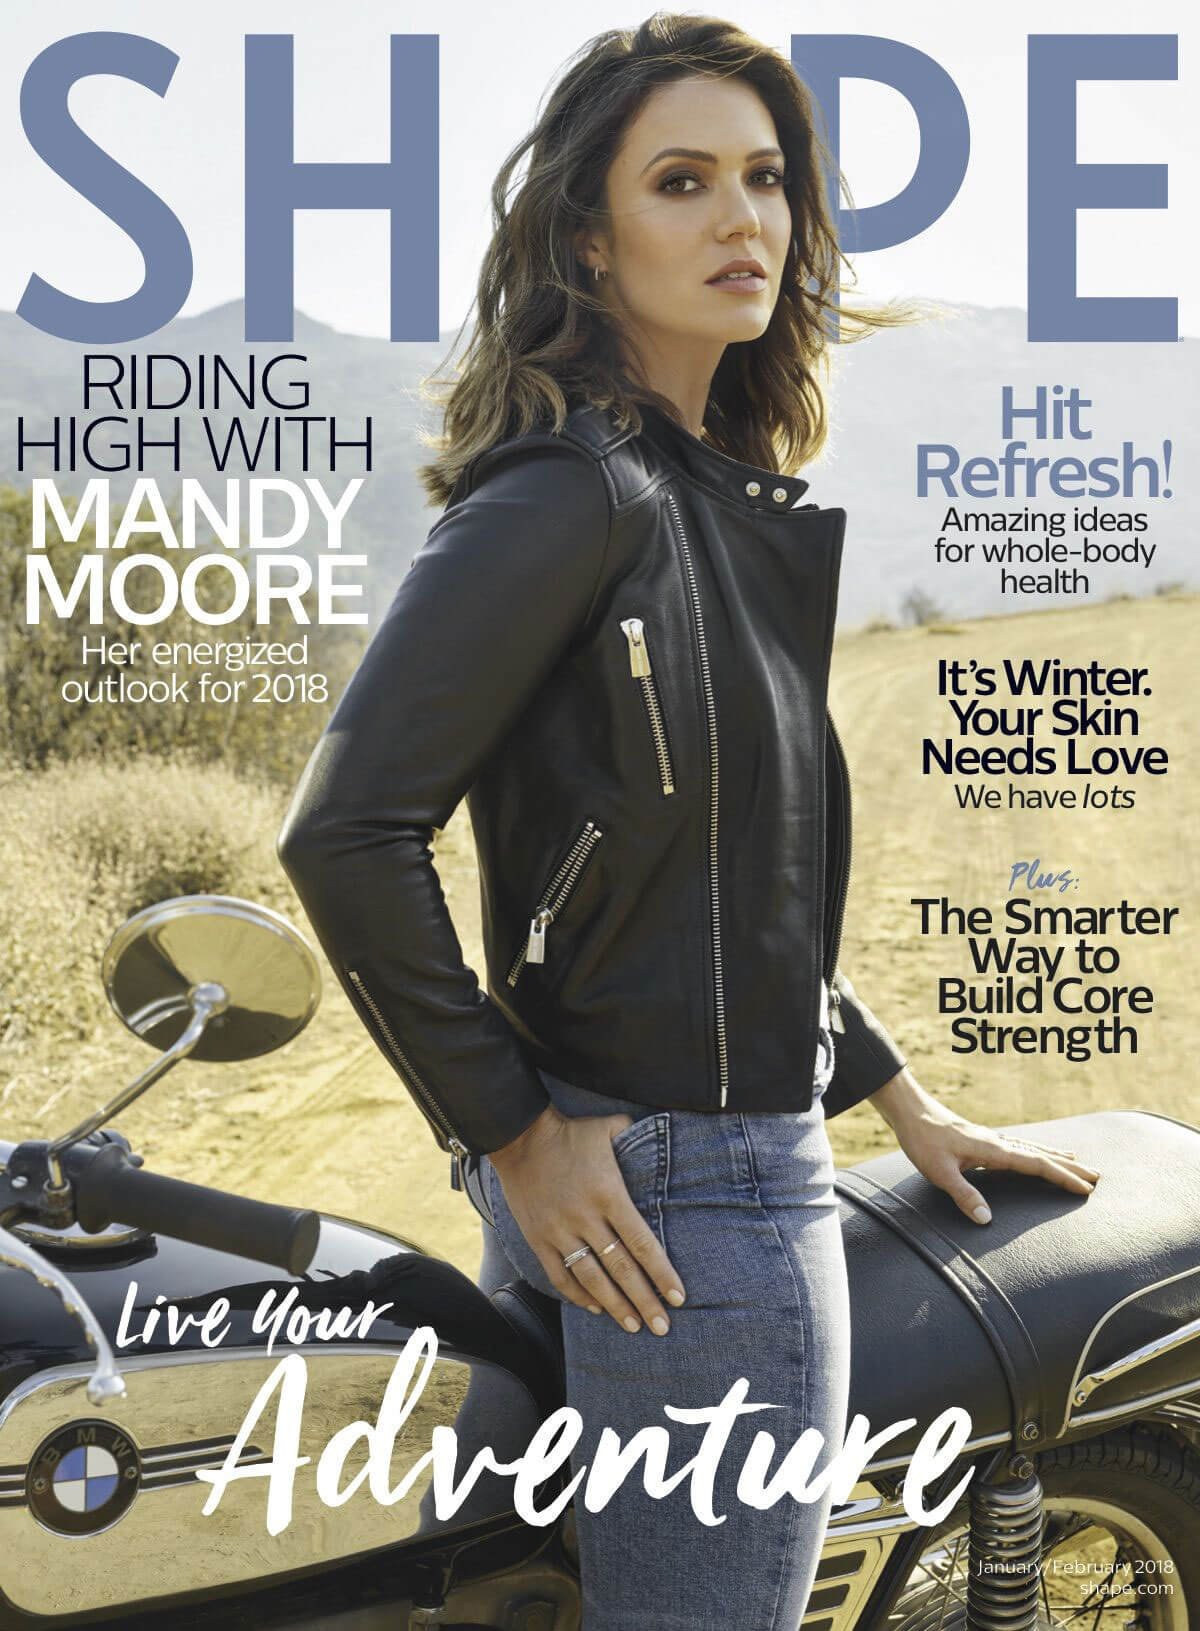 Mandy Moore Stills in Shape Magazine, January/February 2018 Issue